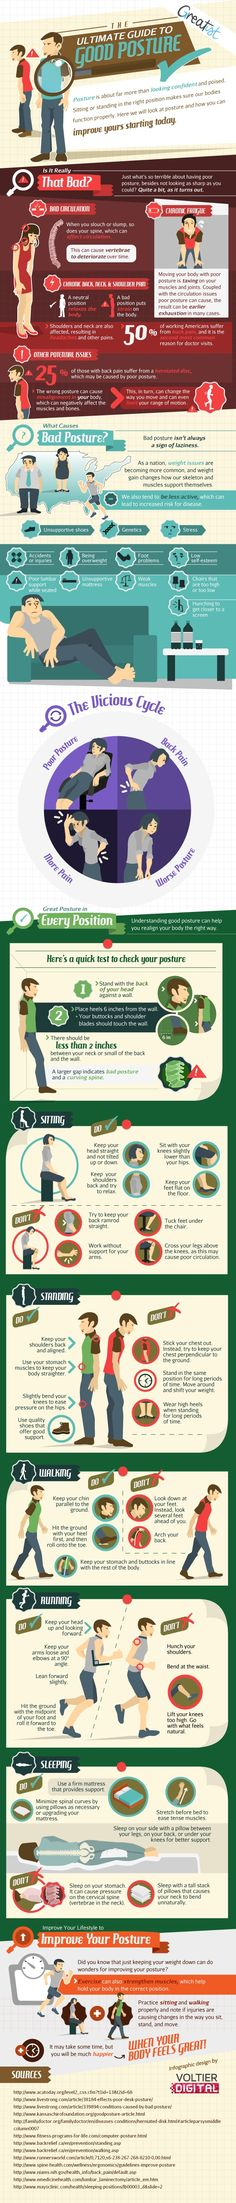 This infographic illustrates the relationship of posture to various health problems. The various problems it describes as often being affected by poor posture i